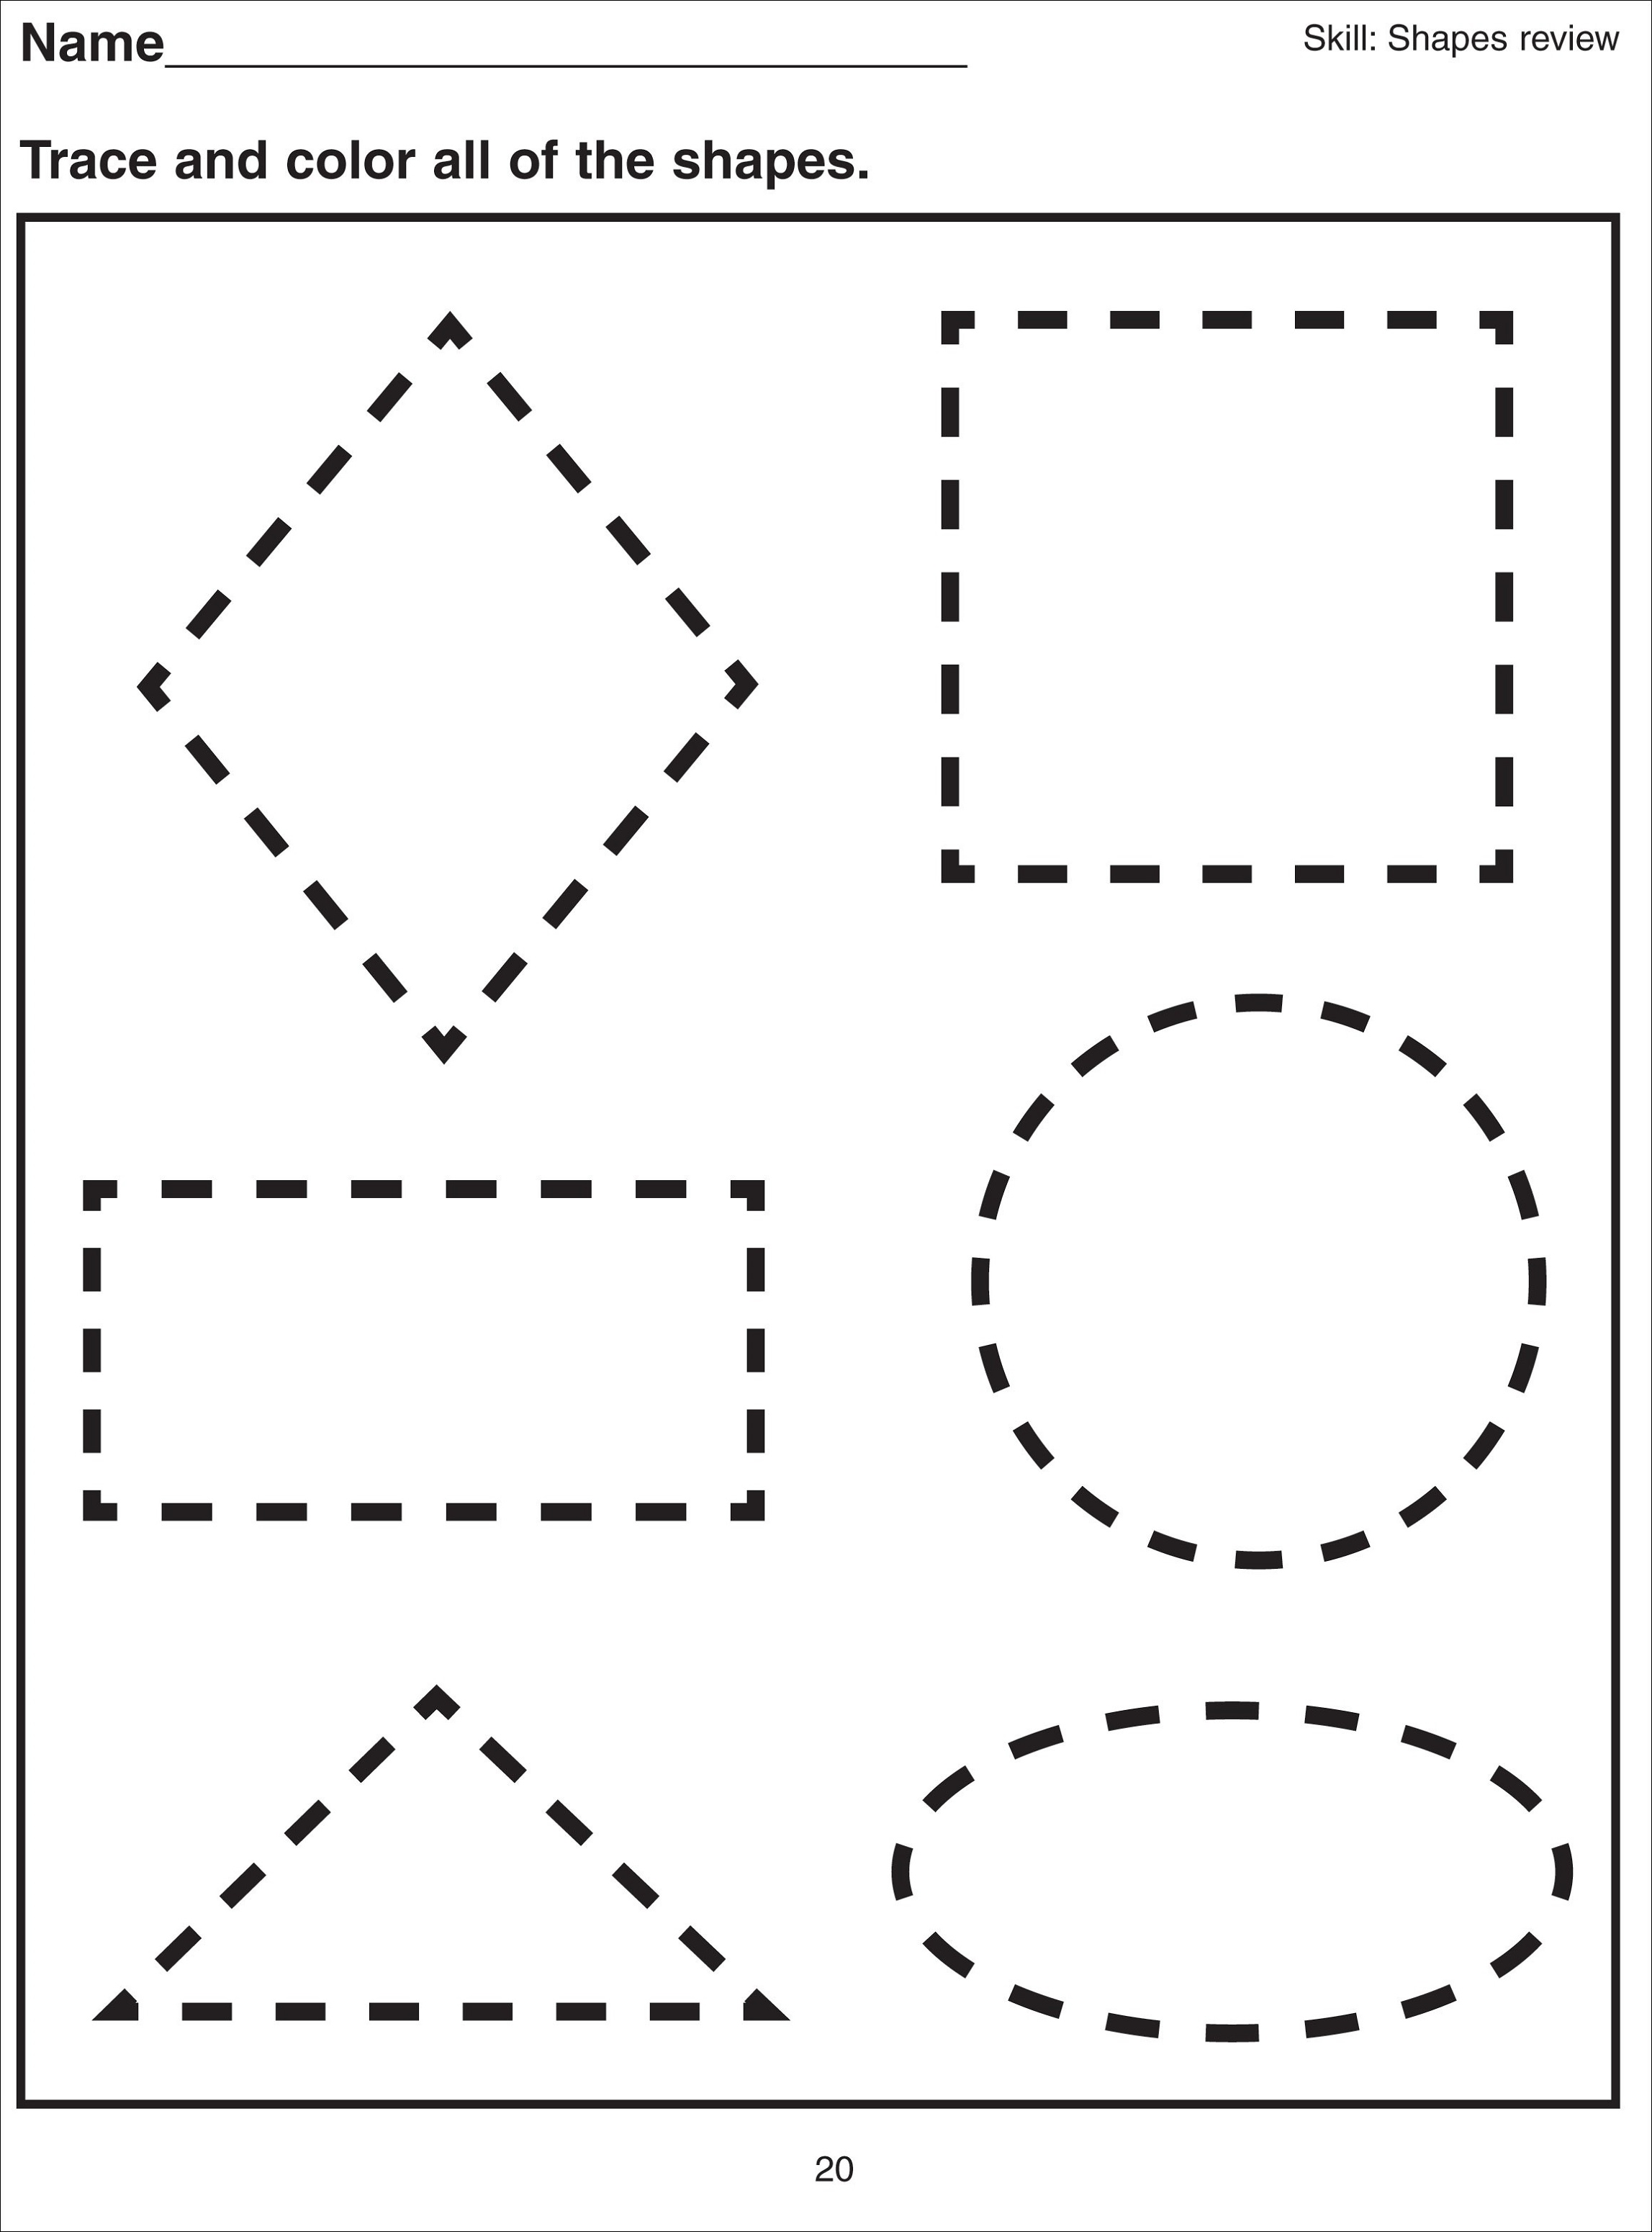 Worksheet About Shapes